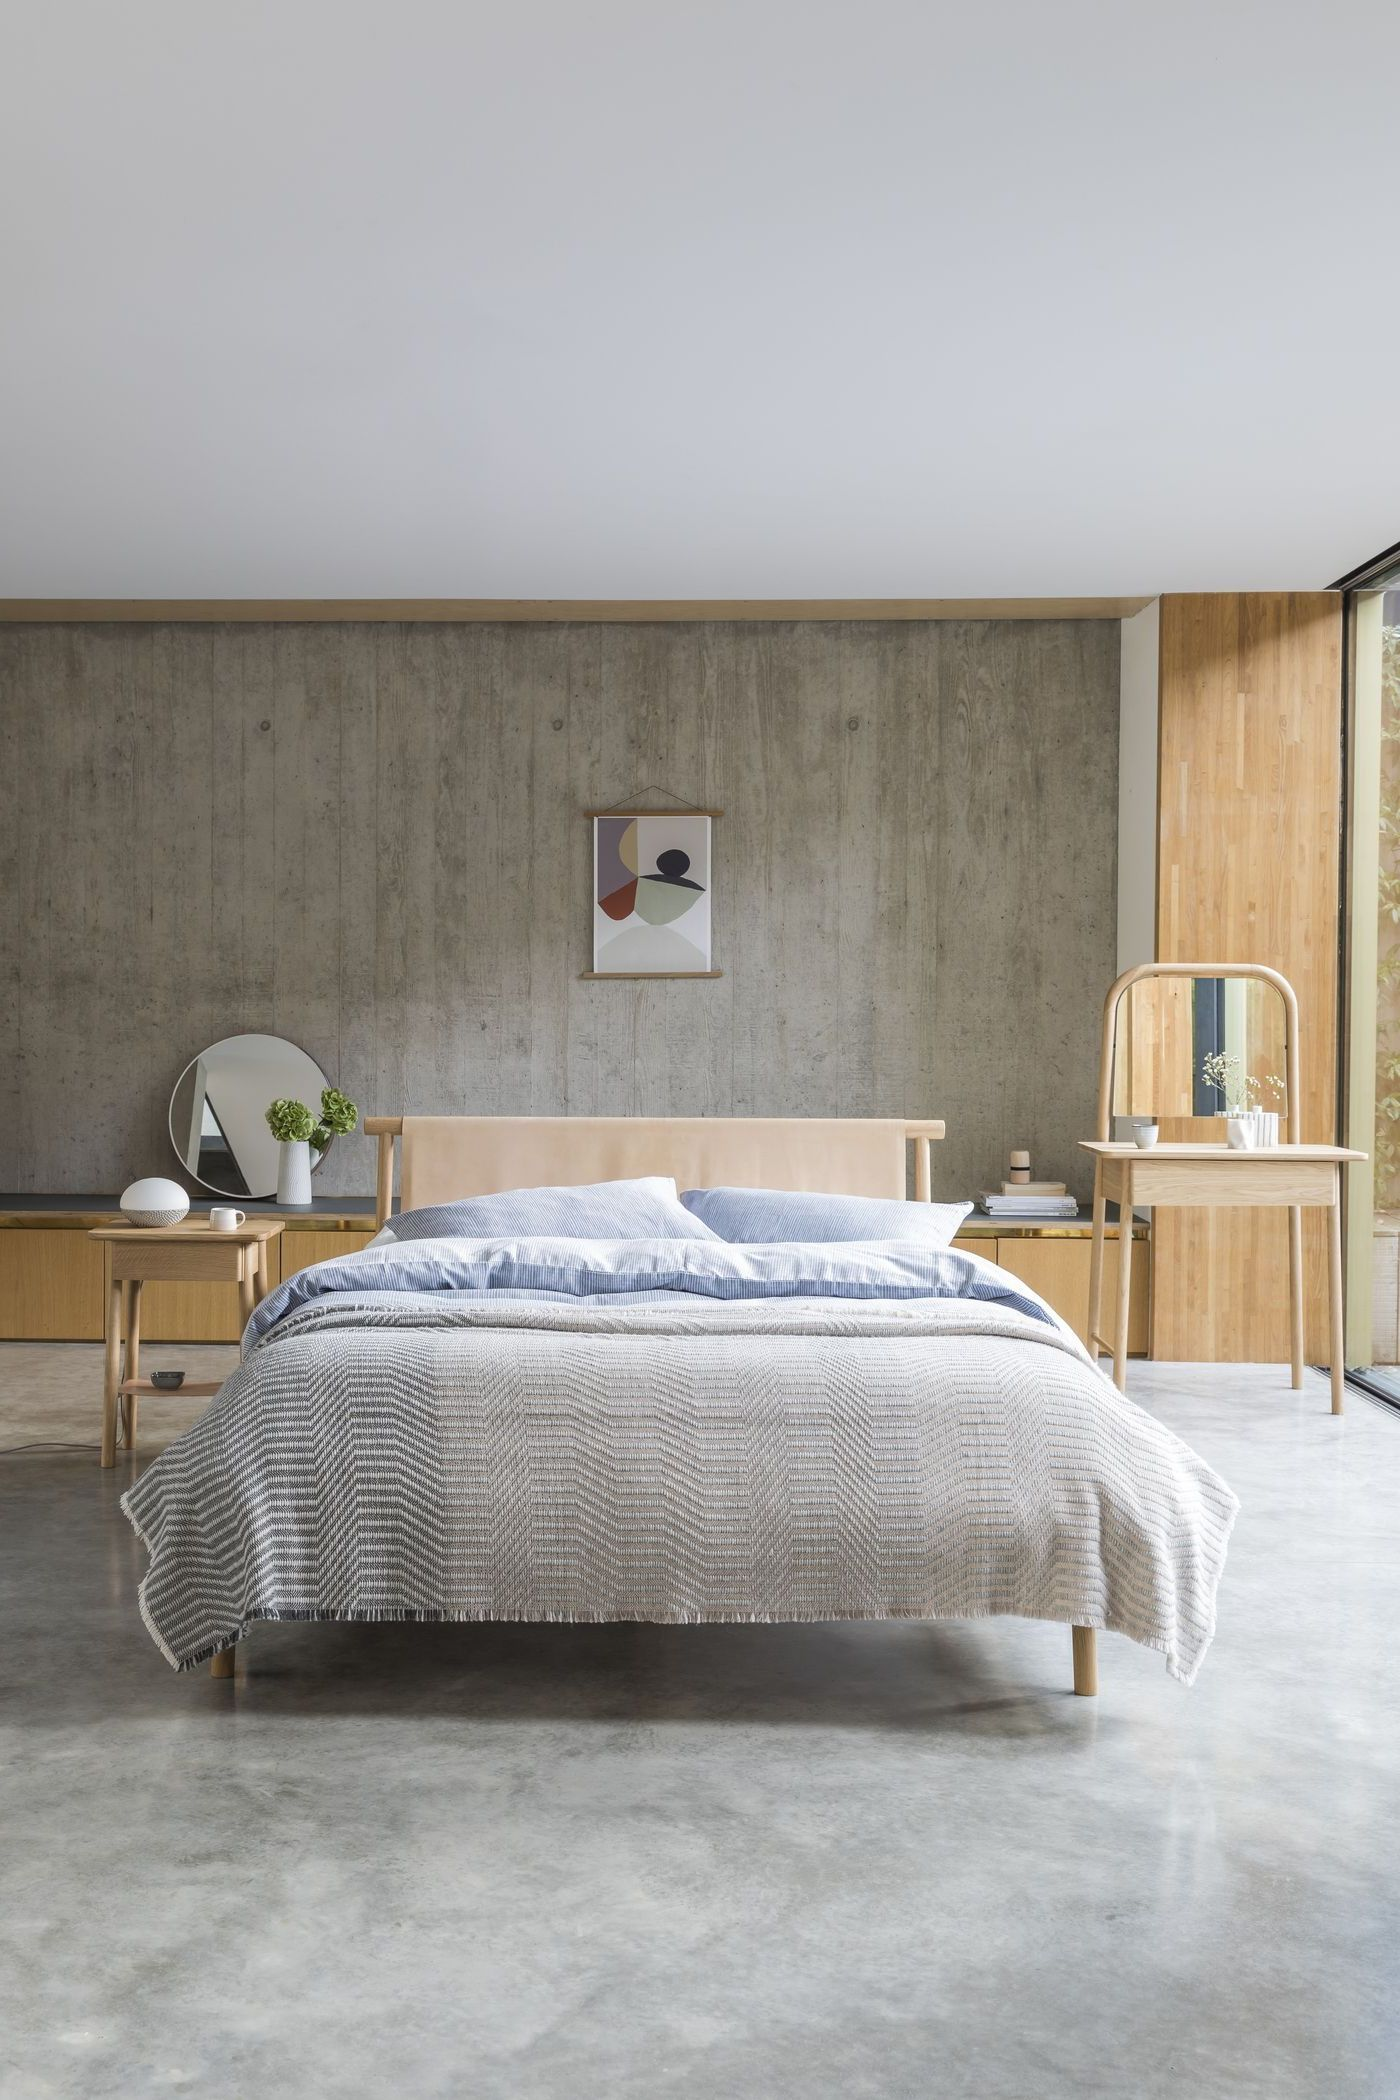 Bedrooms inspired by Japanese decor - Decor Around The ...